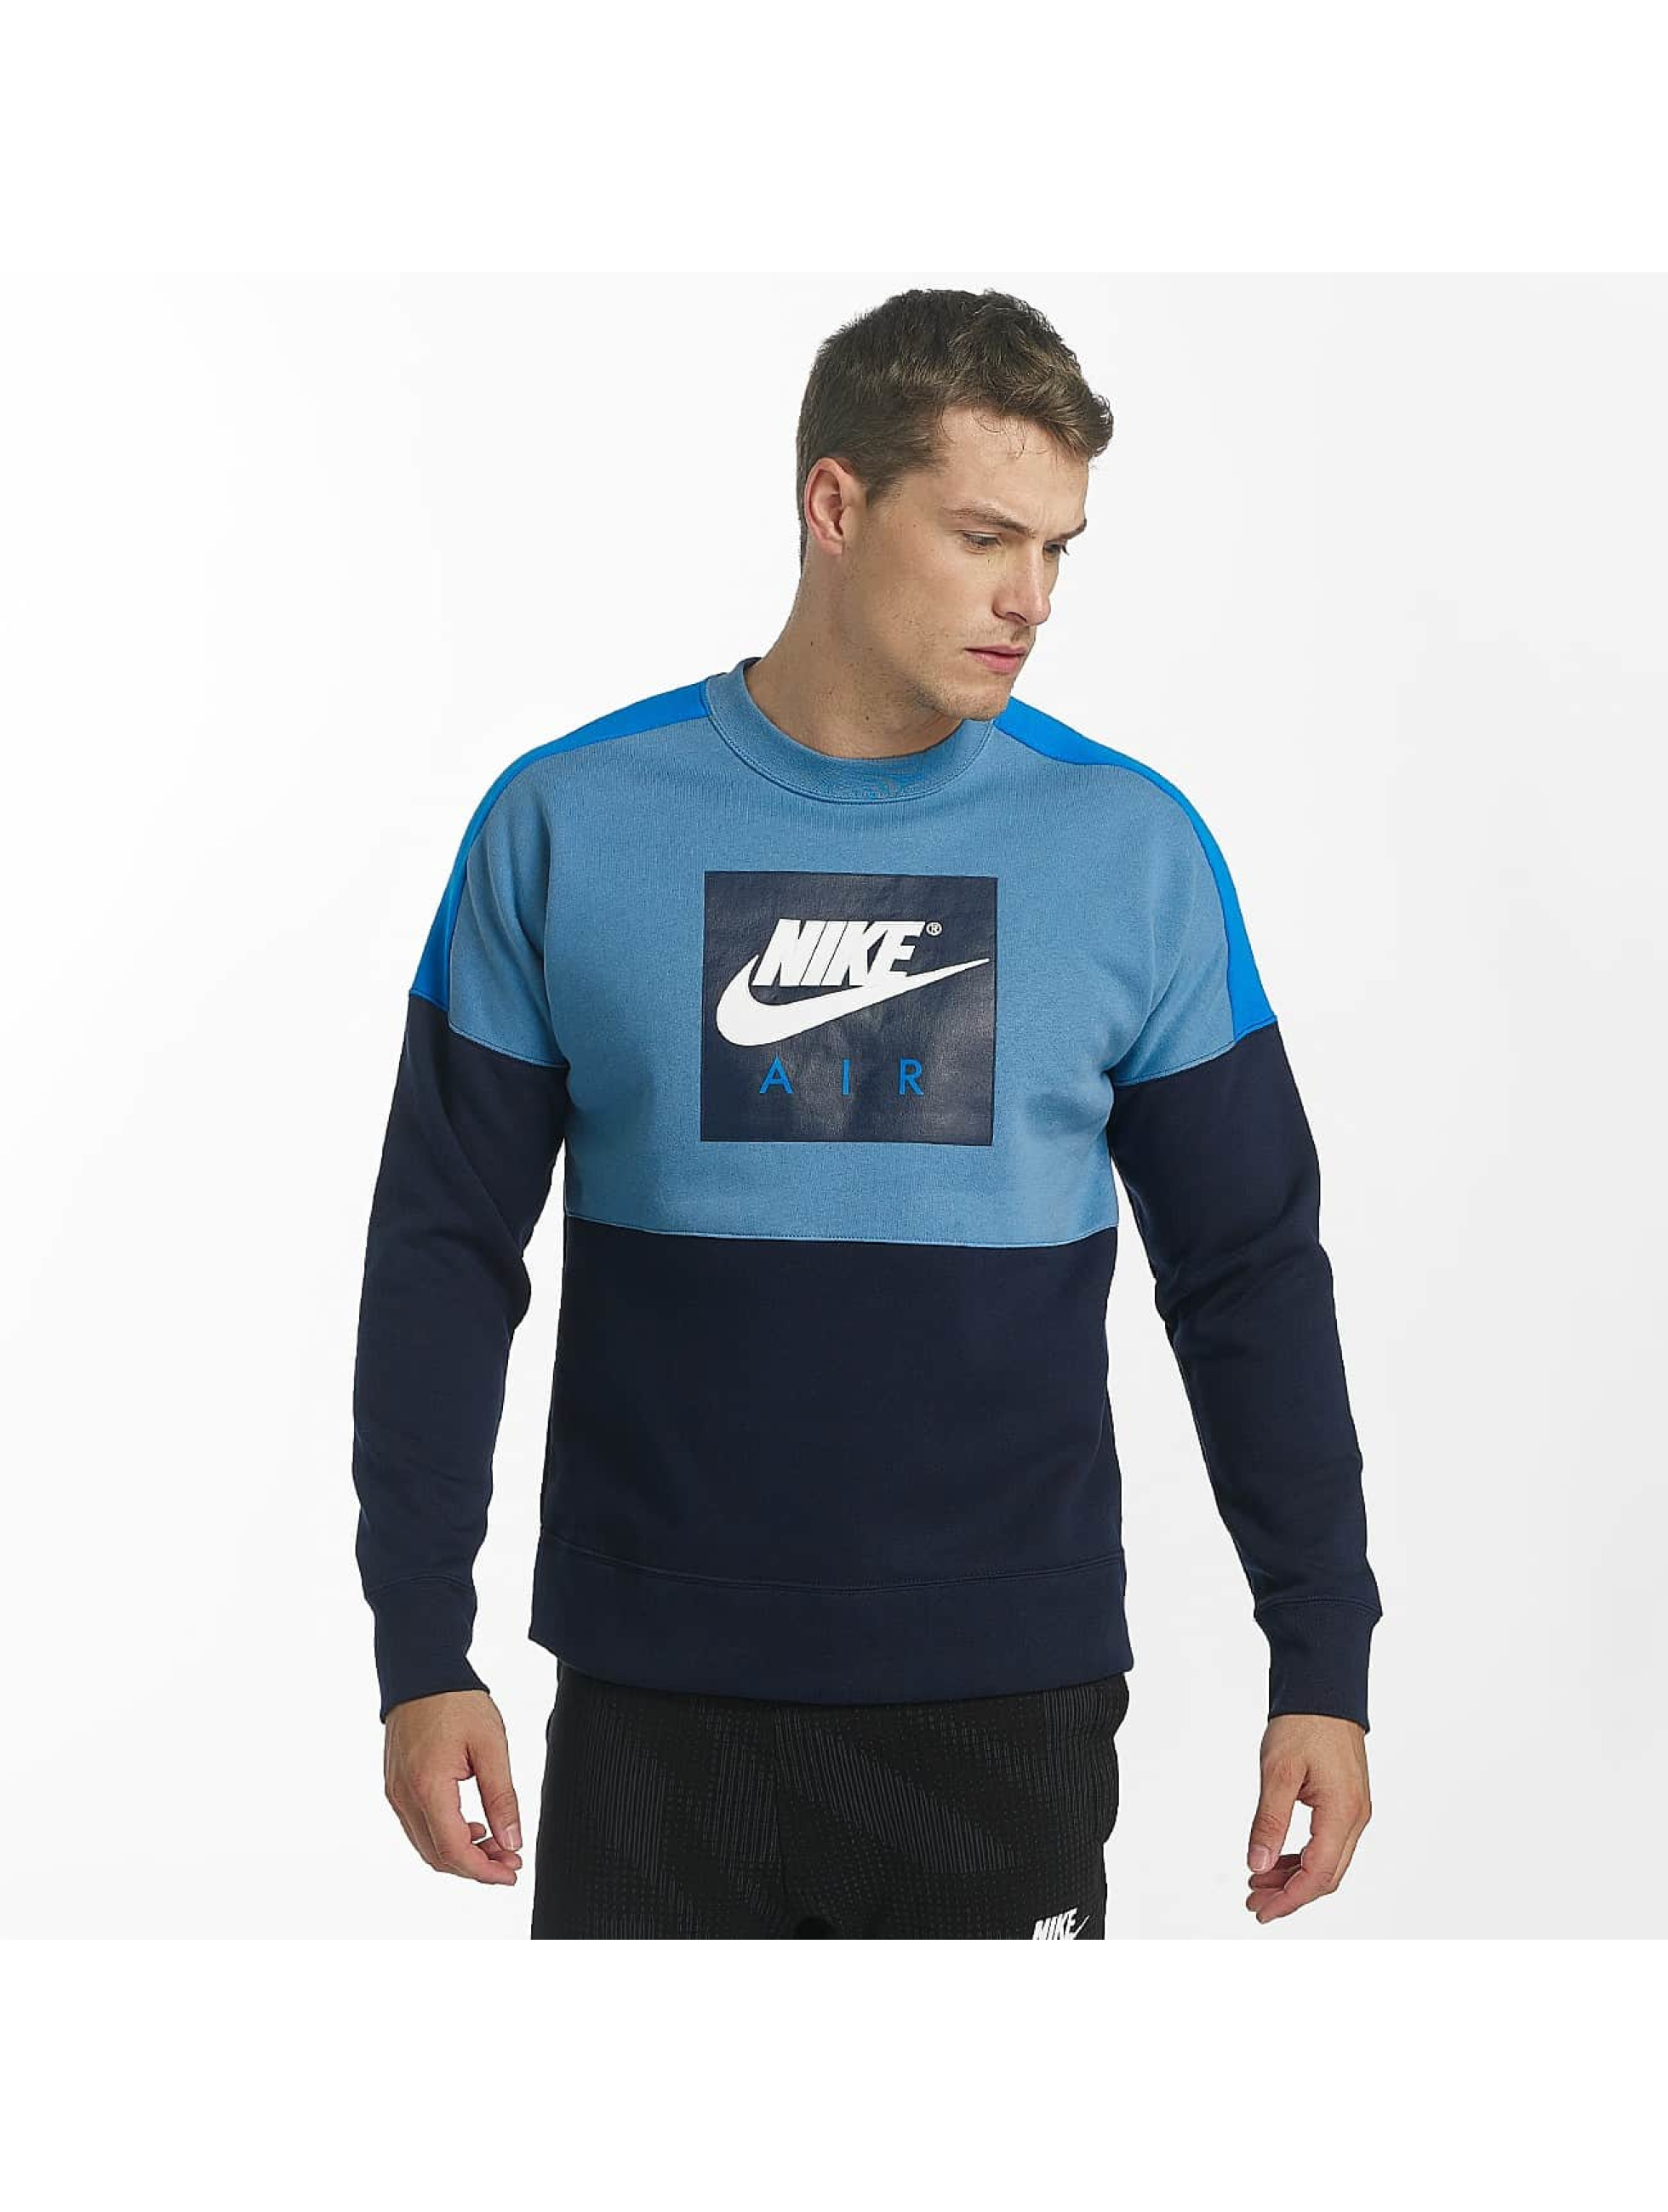 nike herren pullover sportswear in blau 425990. Black Bedroom Furniture Sets. Home Design Ideas